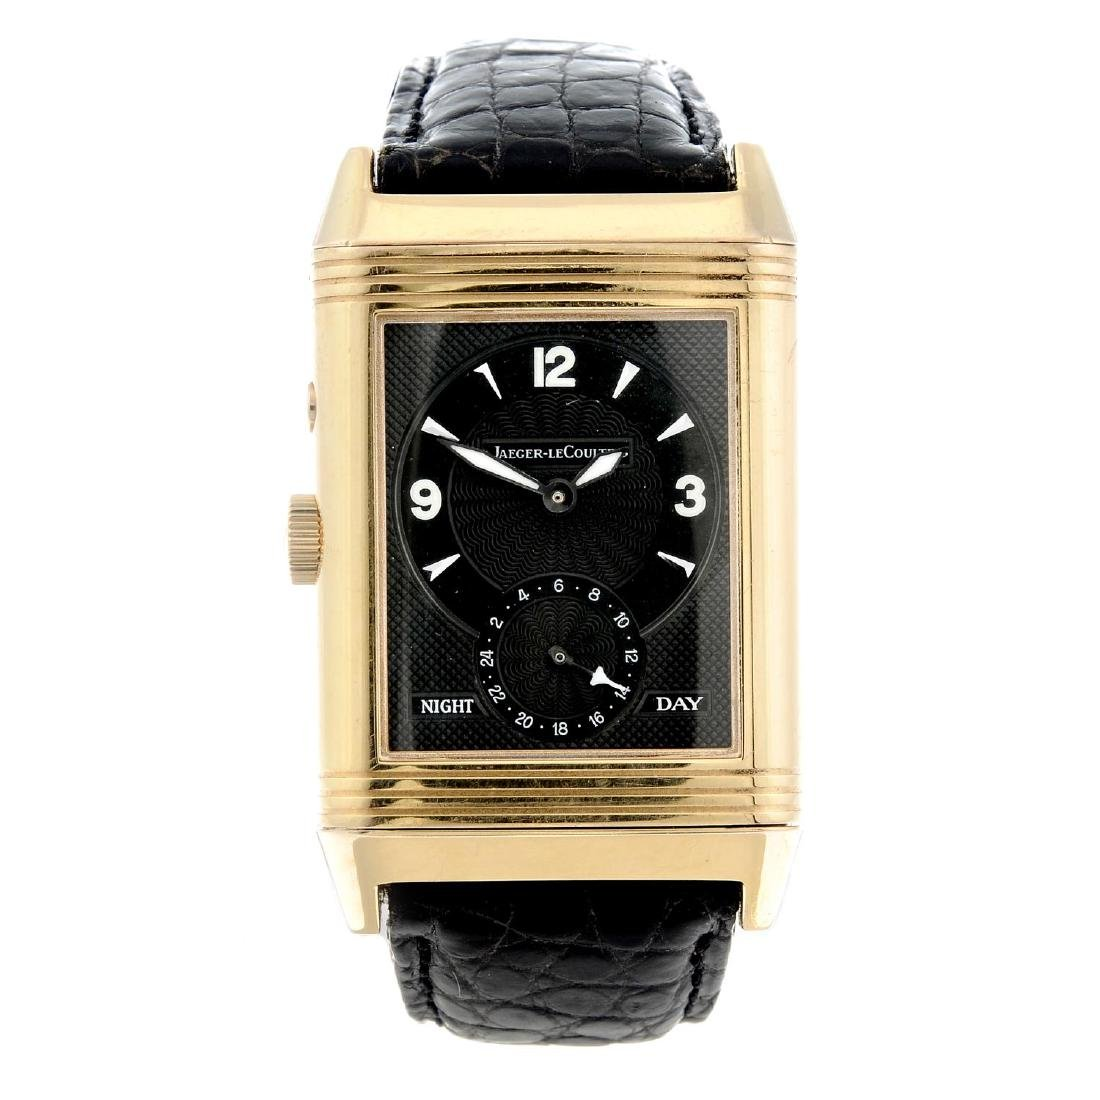 JAEGER-LECOULTRE - a gentleman's Reverso Night Day